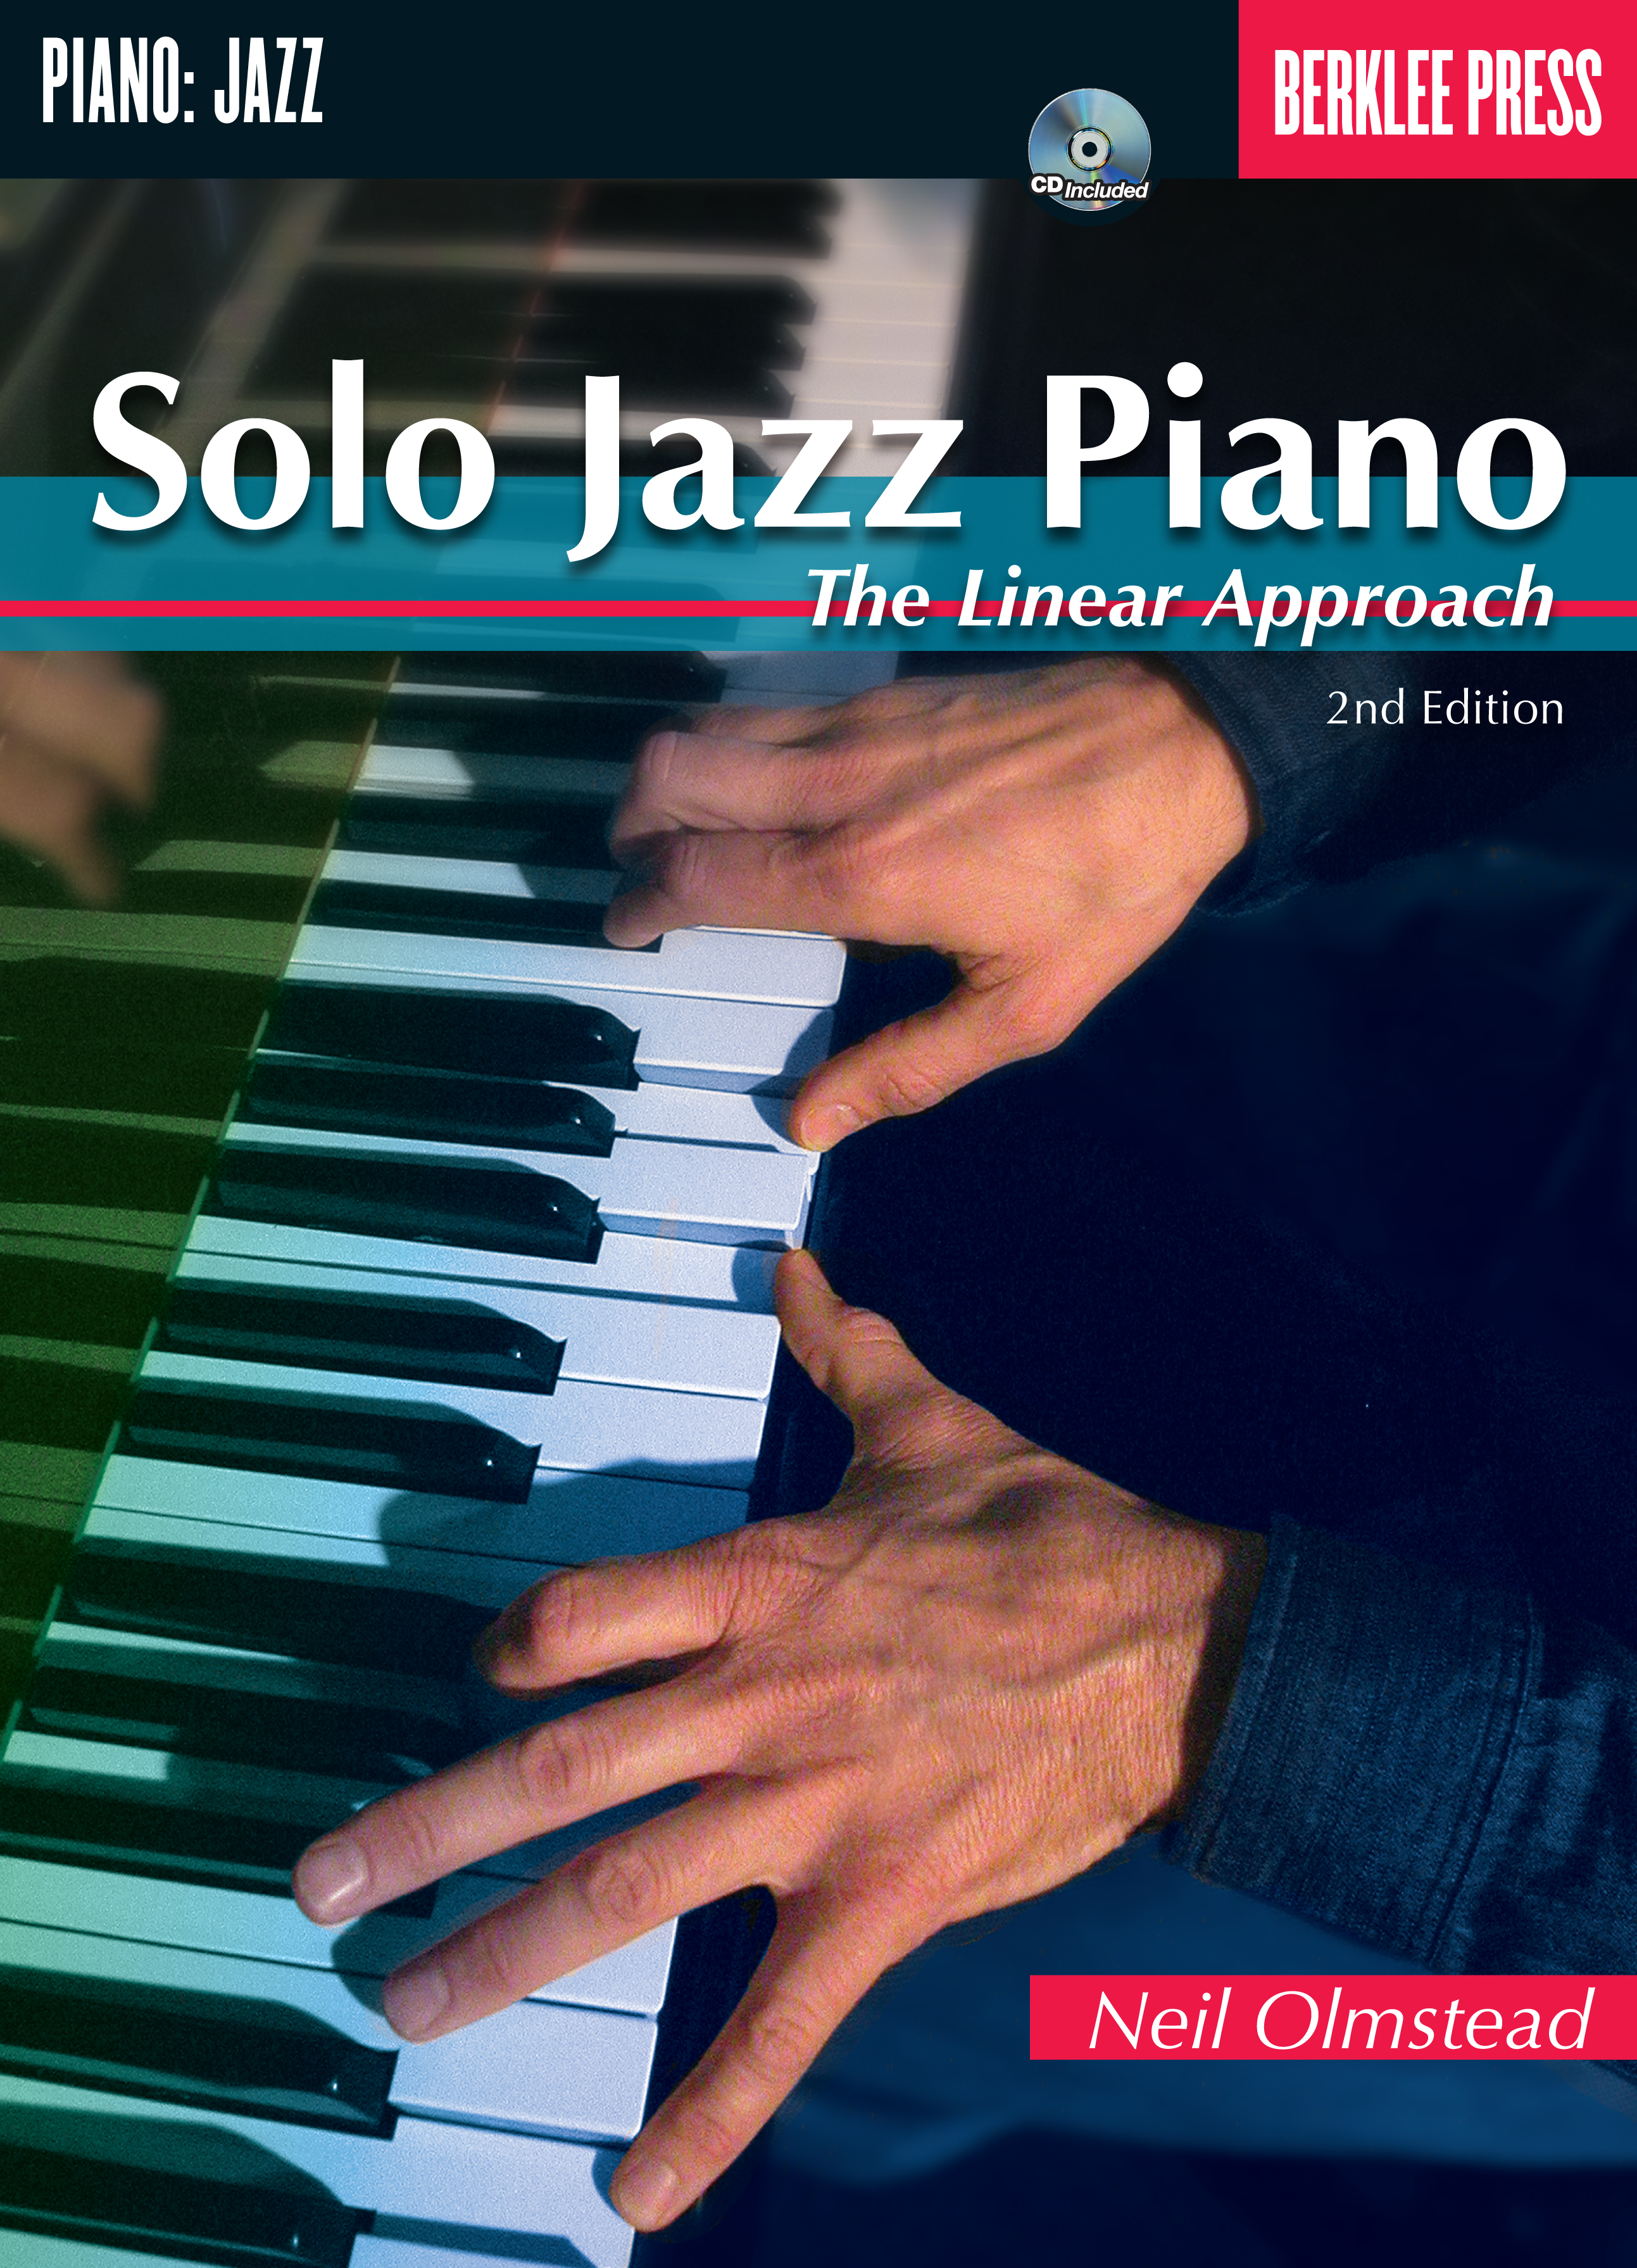 How can i learn to play jazz piano piano ideas pianofl learn piano keyboard 200 lessons hexwebz Choice Image